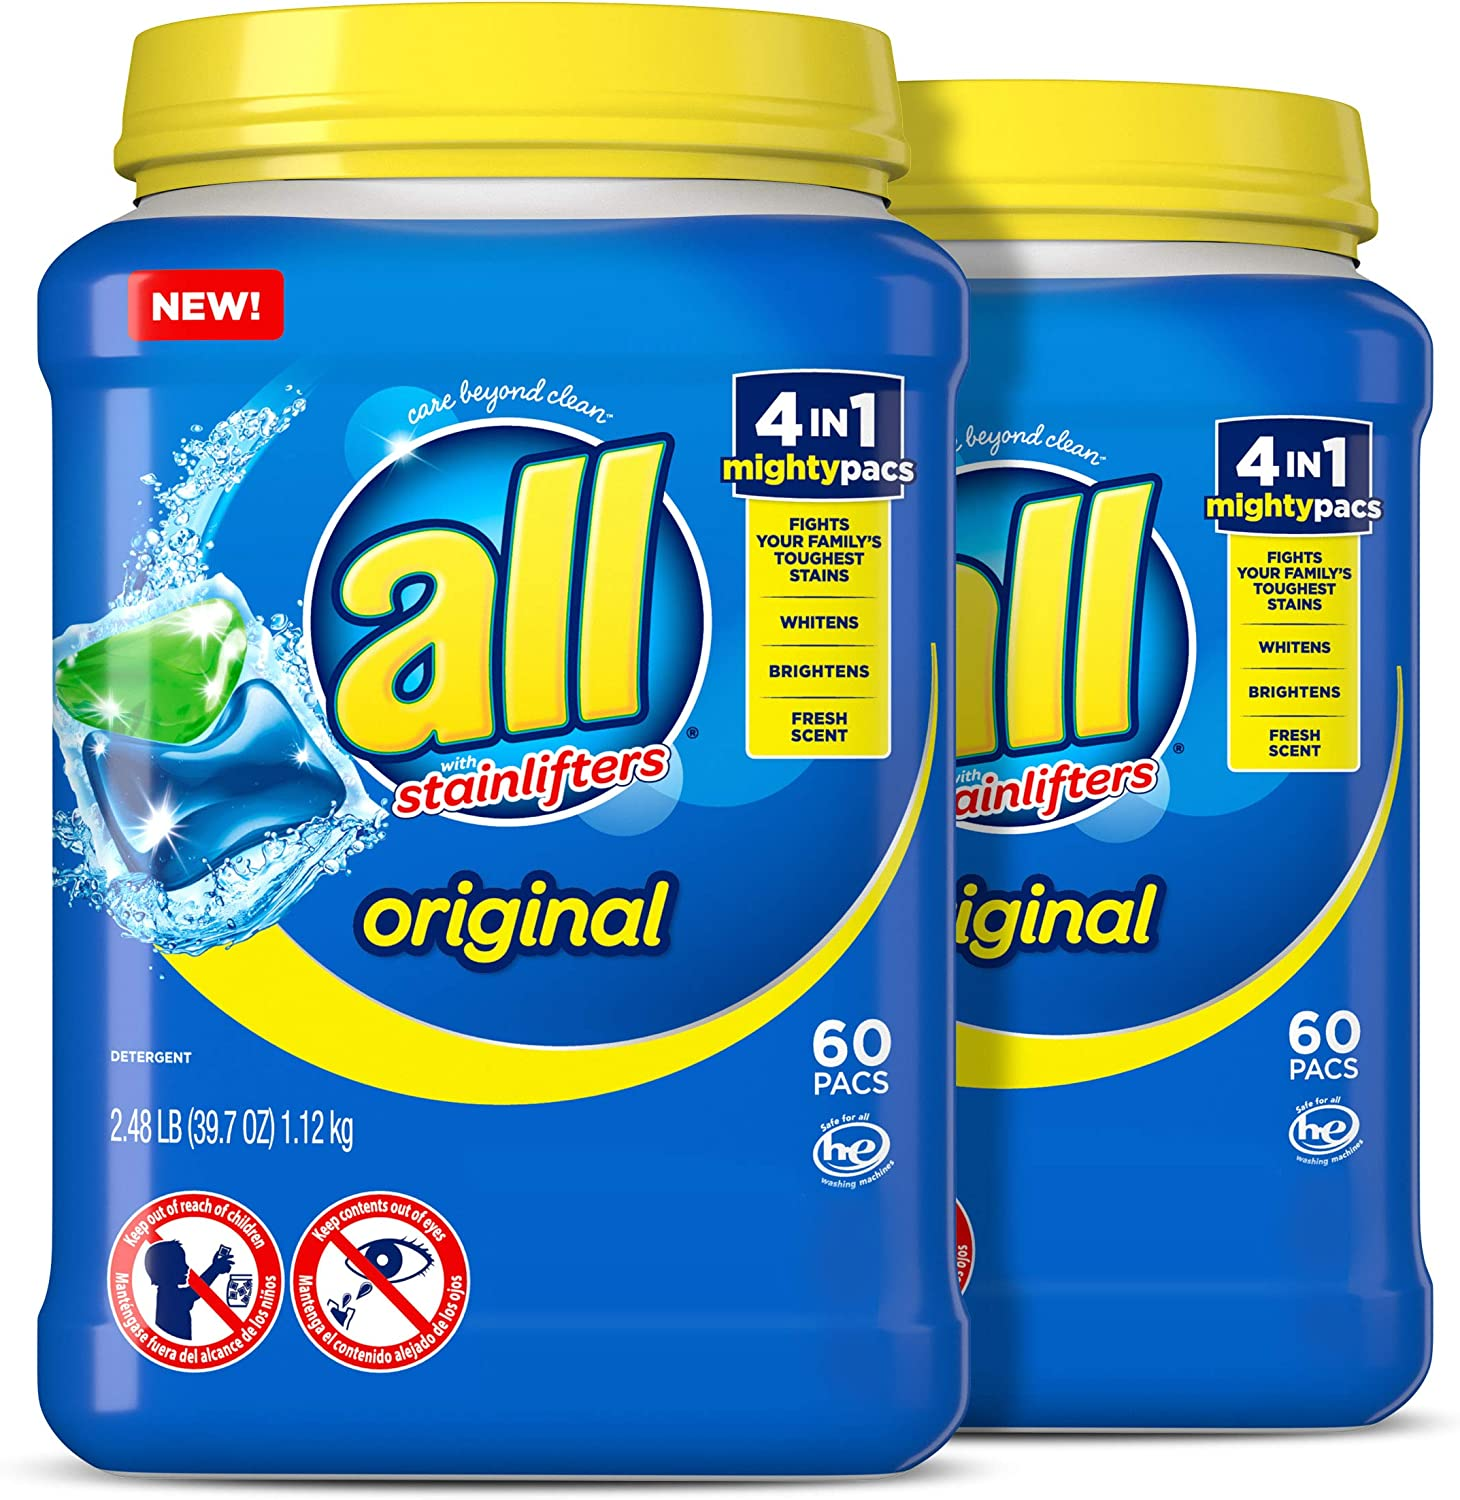 all Mighty Pacs Laundry Detergent, 4 in 1 Stainlifter, Tub, 60 Count, Pack of 2, 120 Total Loads